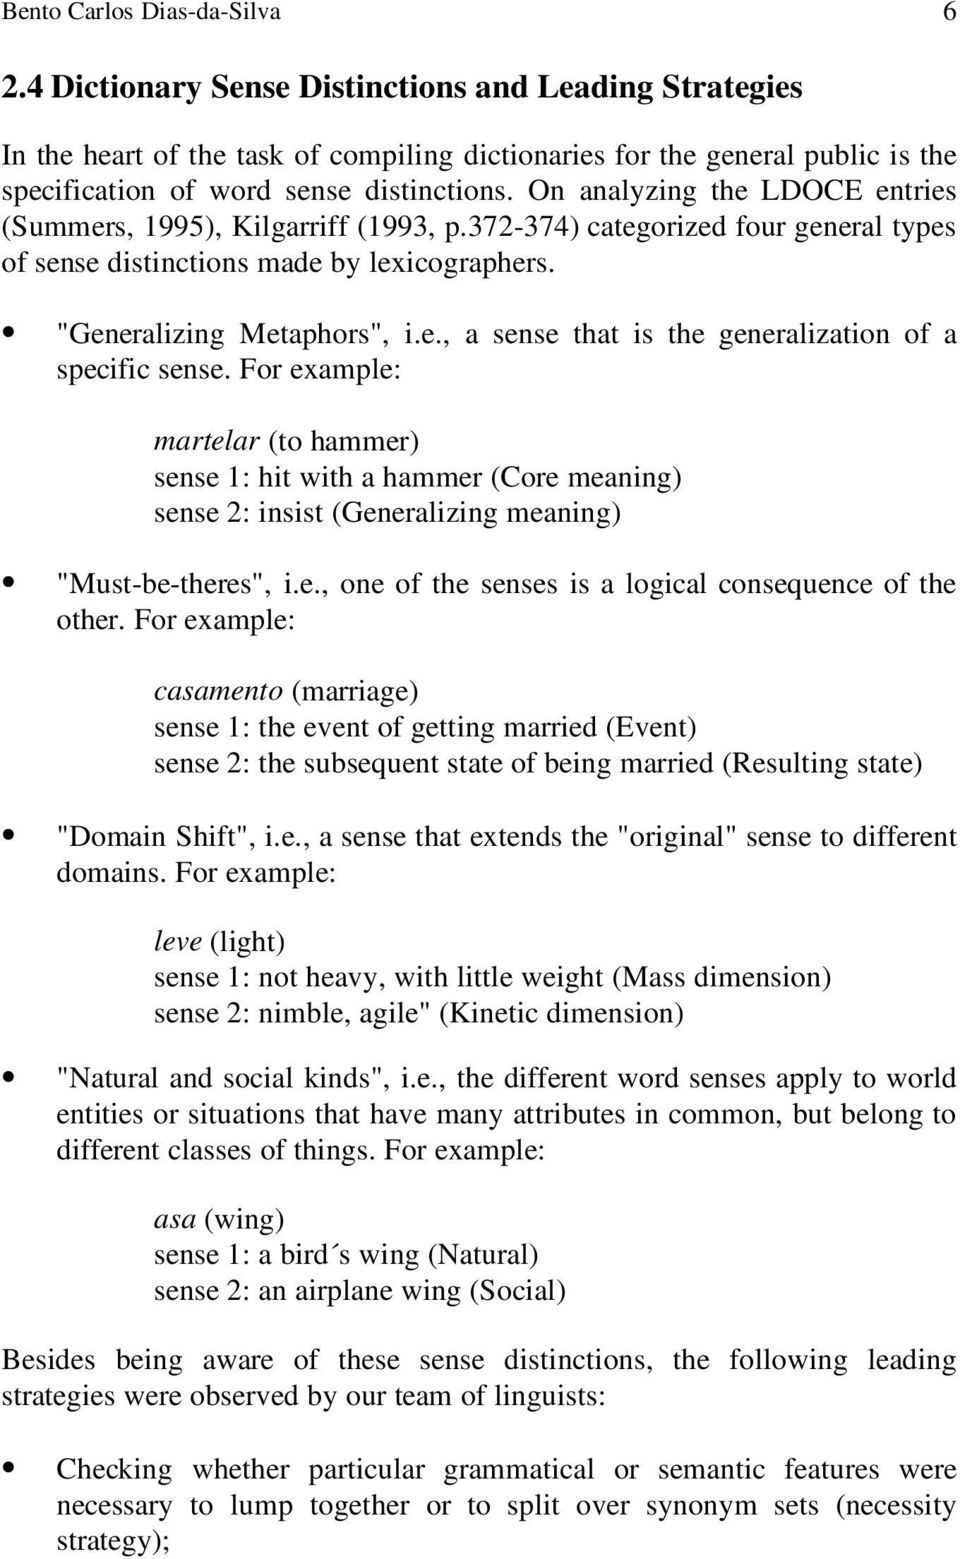 "On analyzing the LDOCE entries (Summers, 1995), Kilgarriff (1993, p.372-374) categorized four general types of sense distinctions made by lexicographers. ""Generalizing Metaphors"", i.e., a sense that is the generalization of a specific sense."